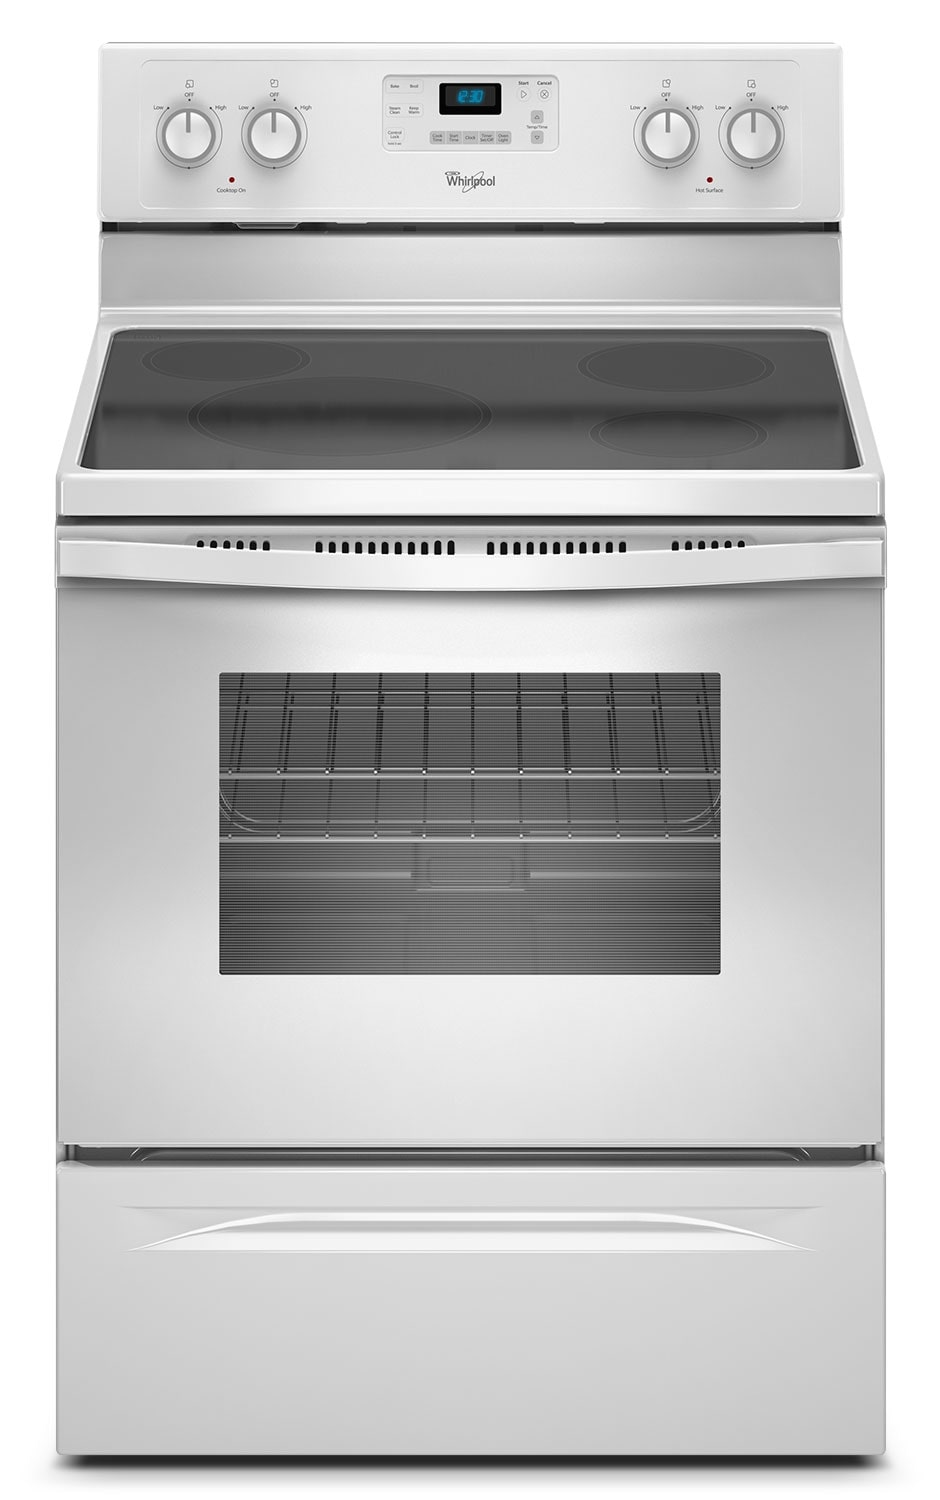 Whirlpool® 4.8 Cu. Ft. Capacity Freestanding Electric Range - White